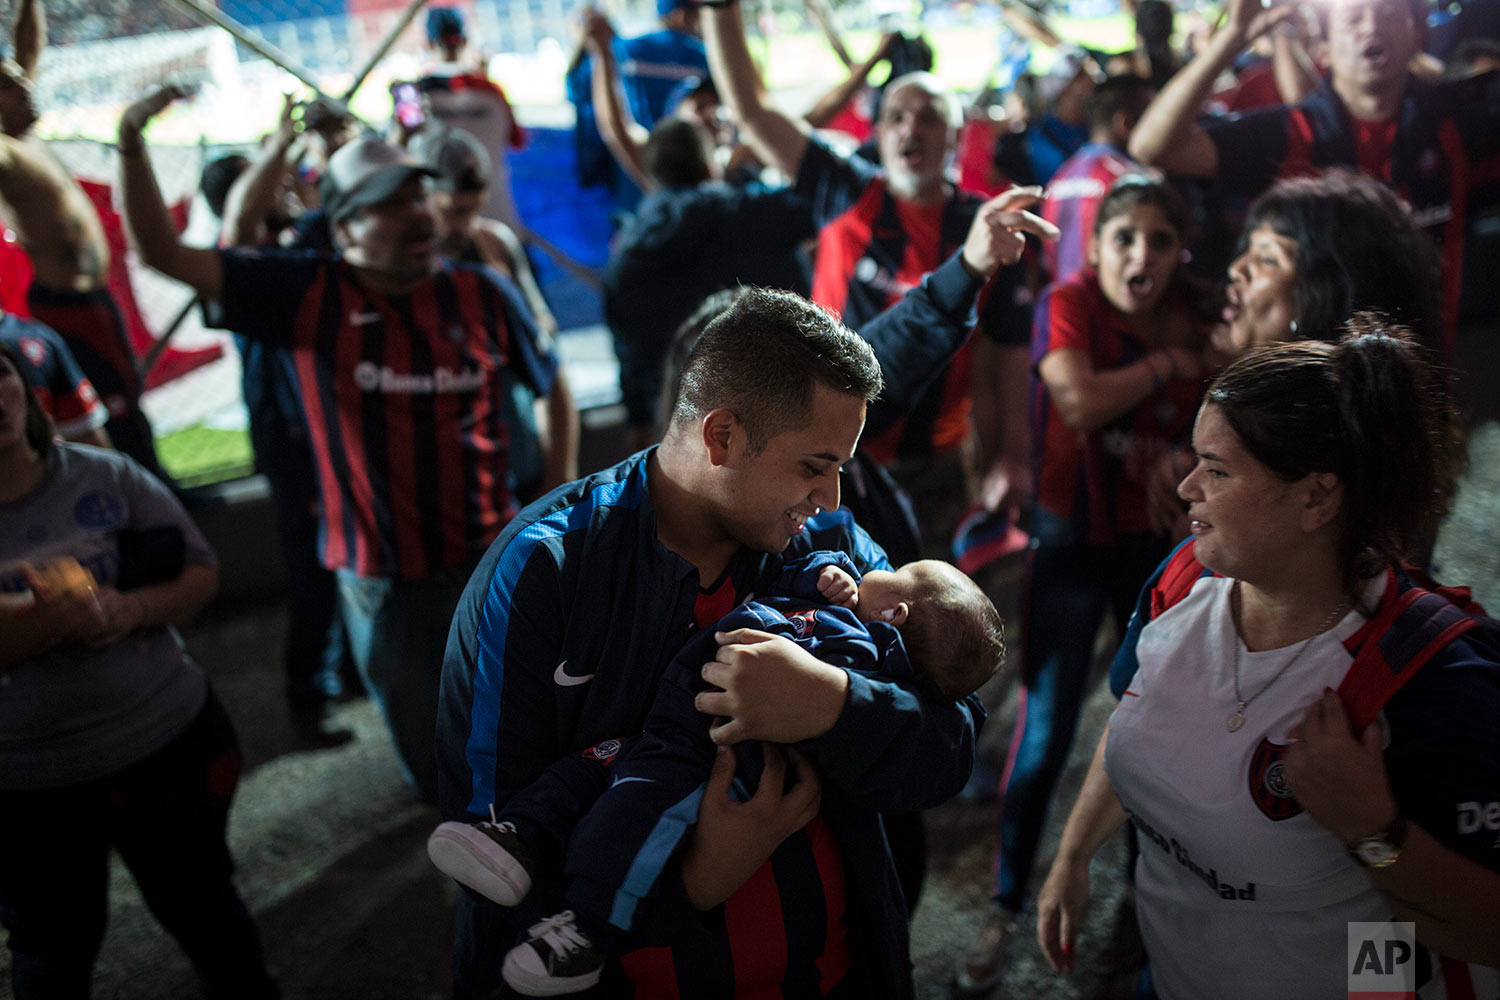 In this April 21, 2018 photo, a San Lorenzo soccer fan holds his baby amid chanting fans during a match against Chacarita in Buenos Aires, Argentina. (AP Photo/Rodrigo Abd)